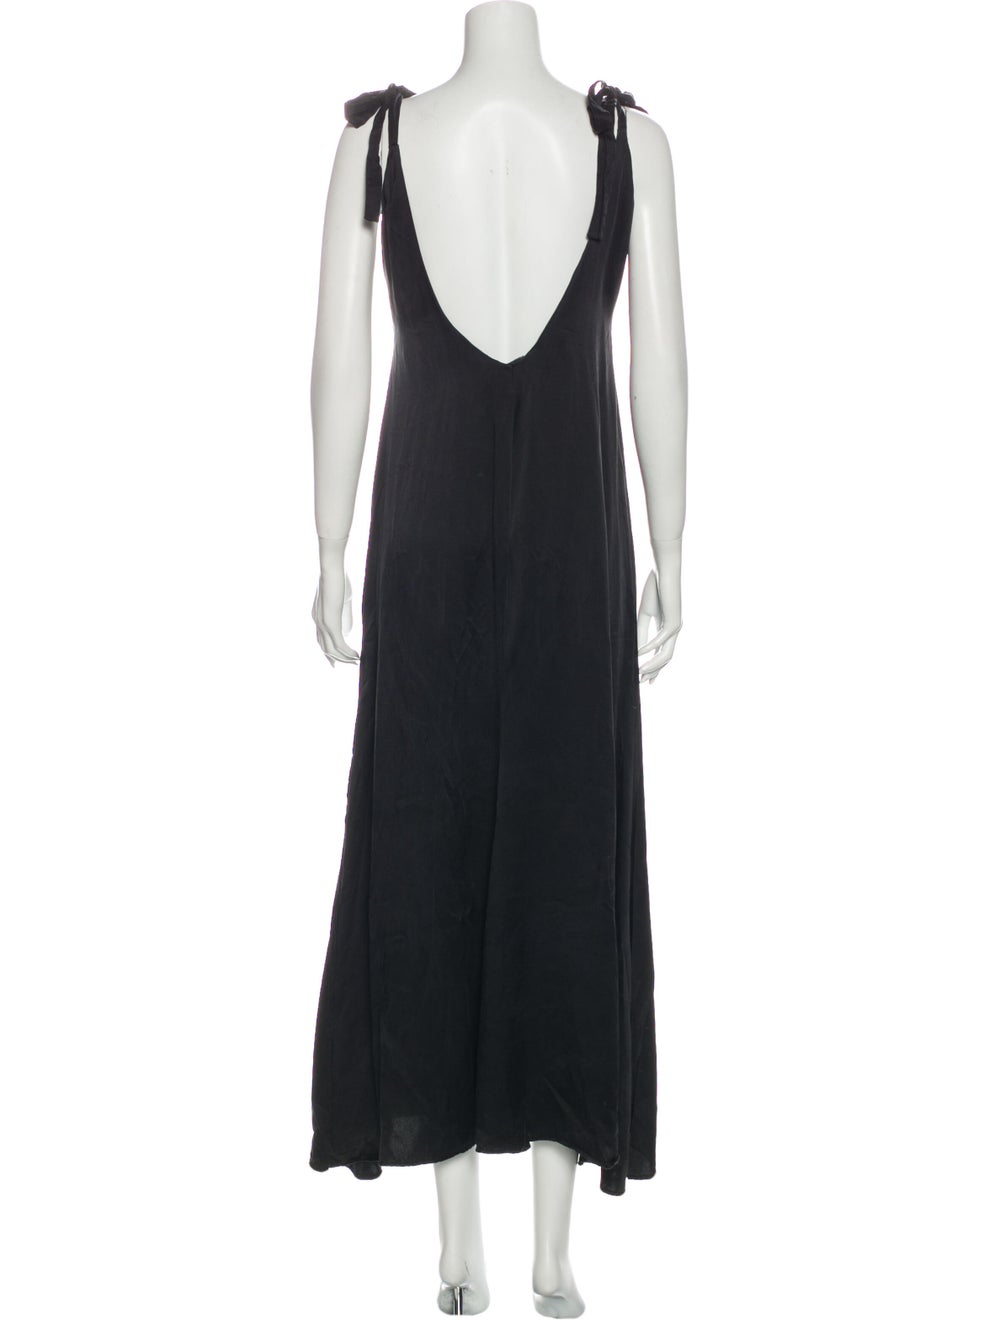 Reformation Silk Long Dress Black - image 3